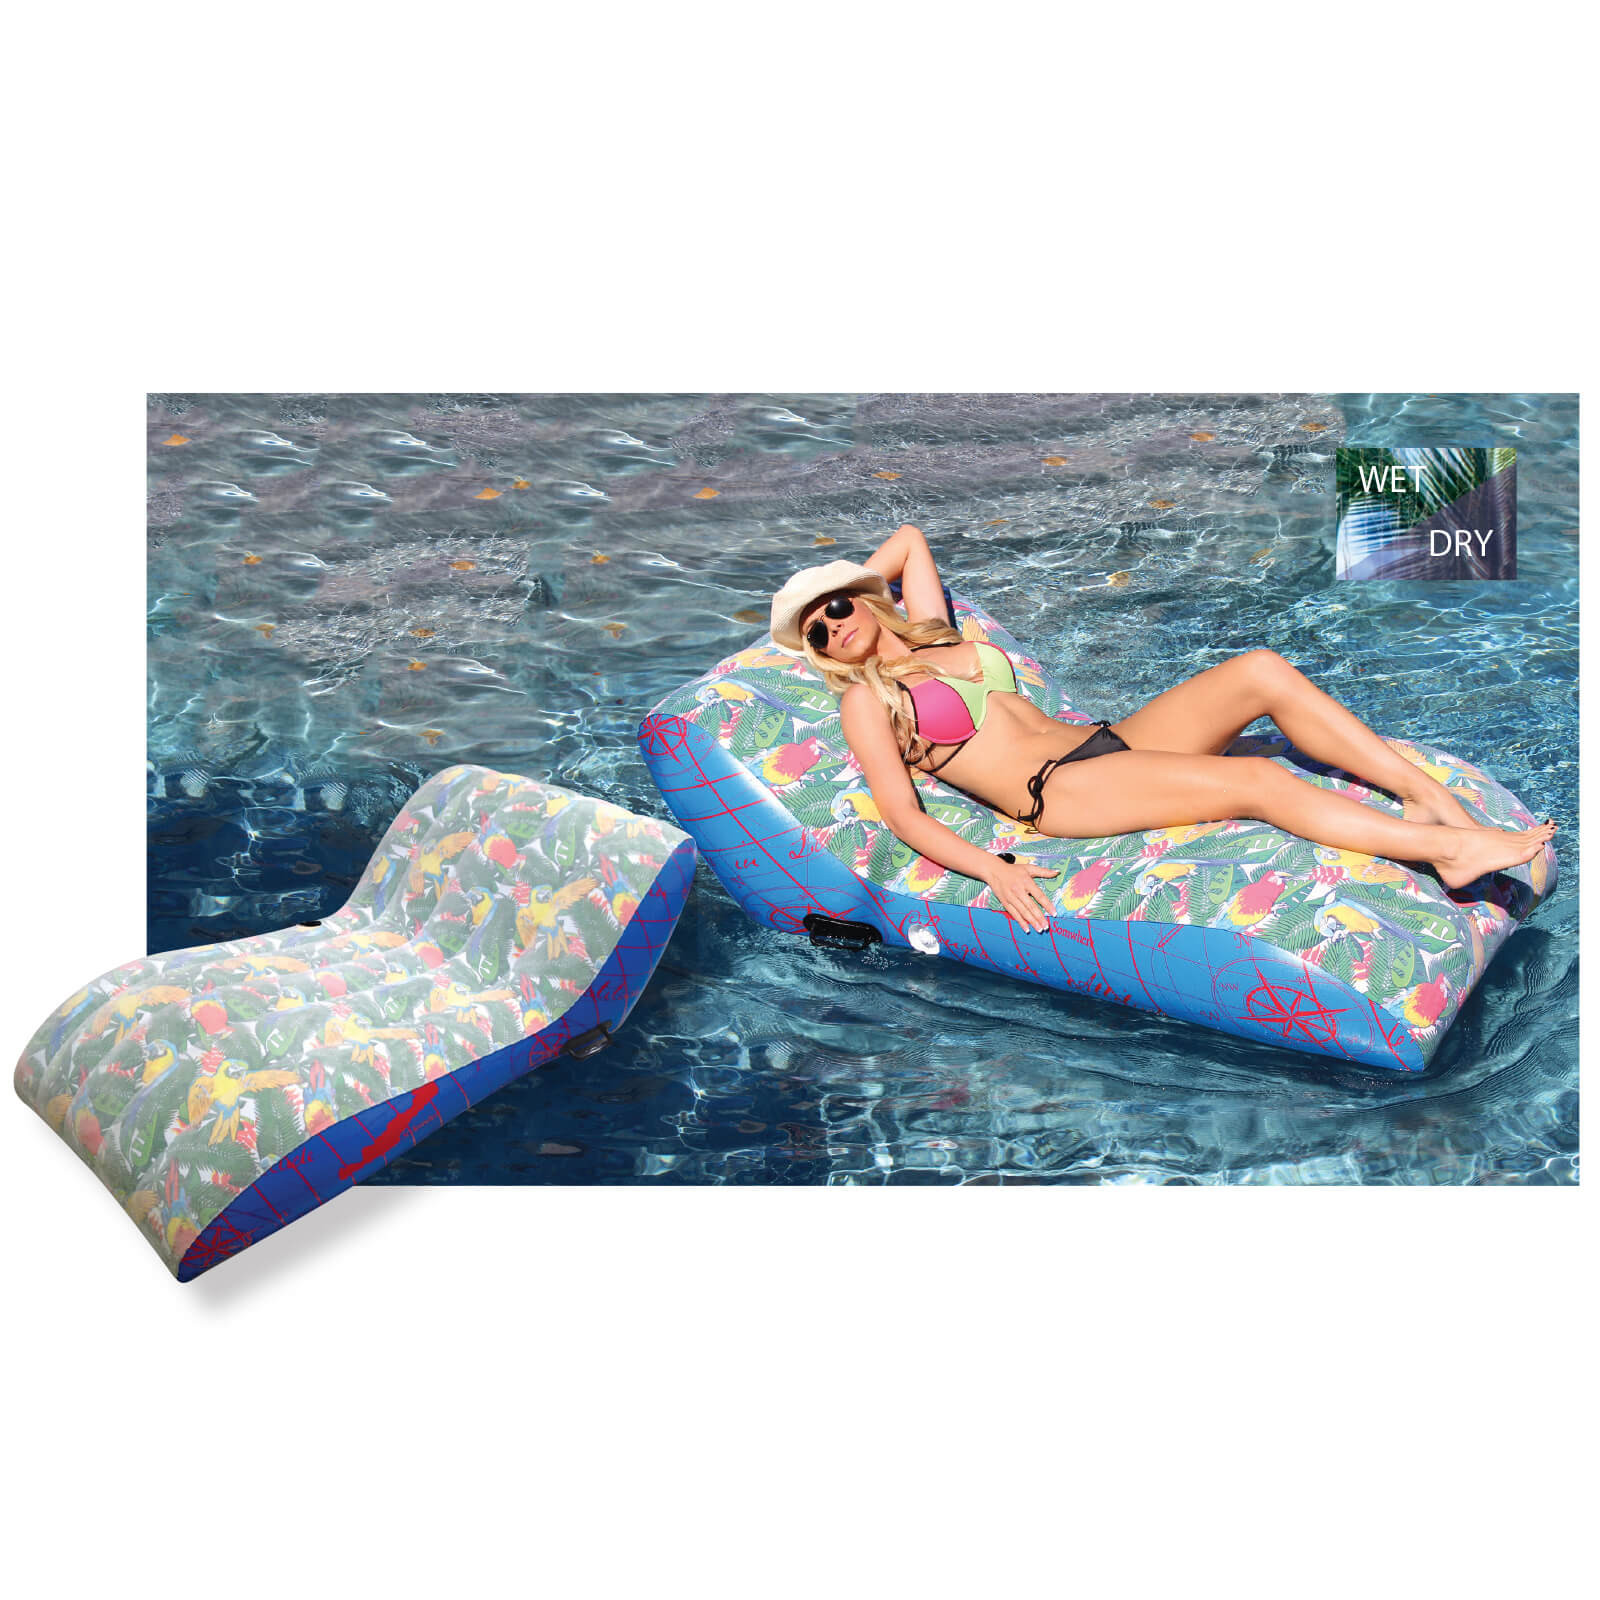 MV OVERSIZED SINGLE LOUNGER